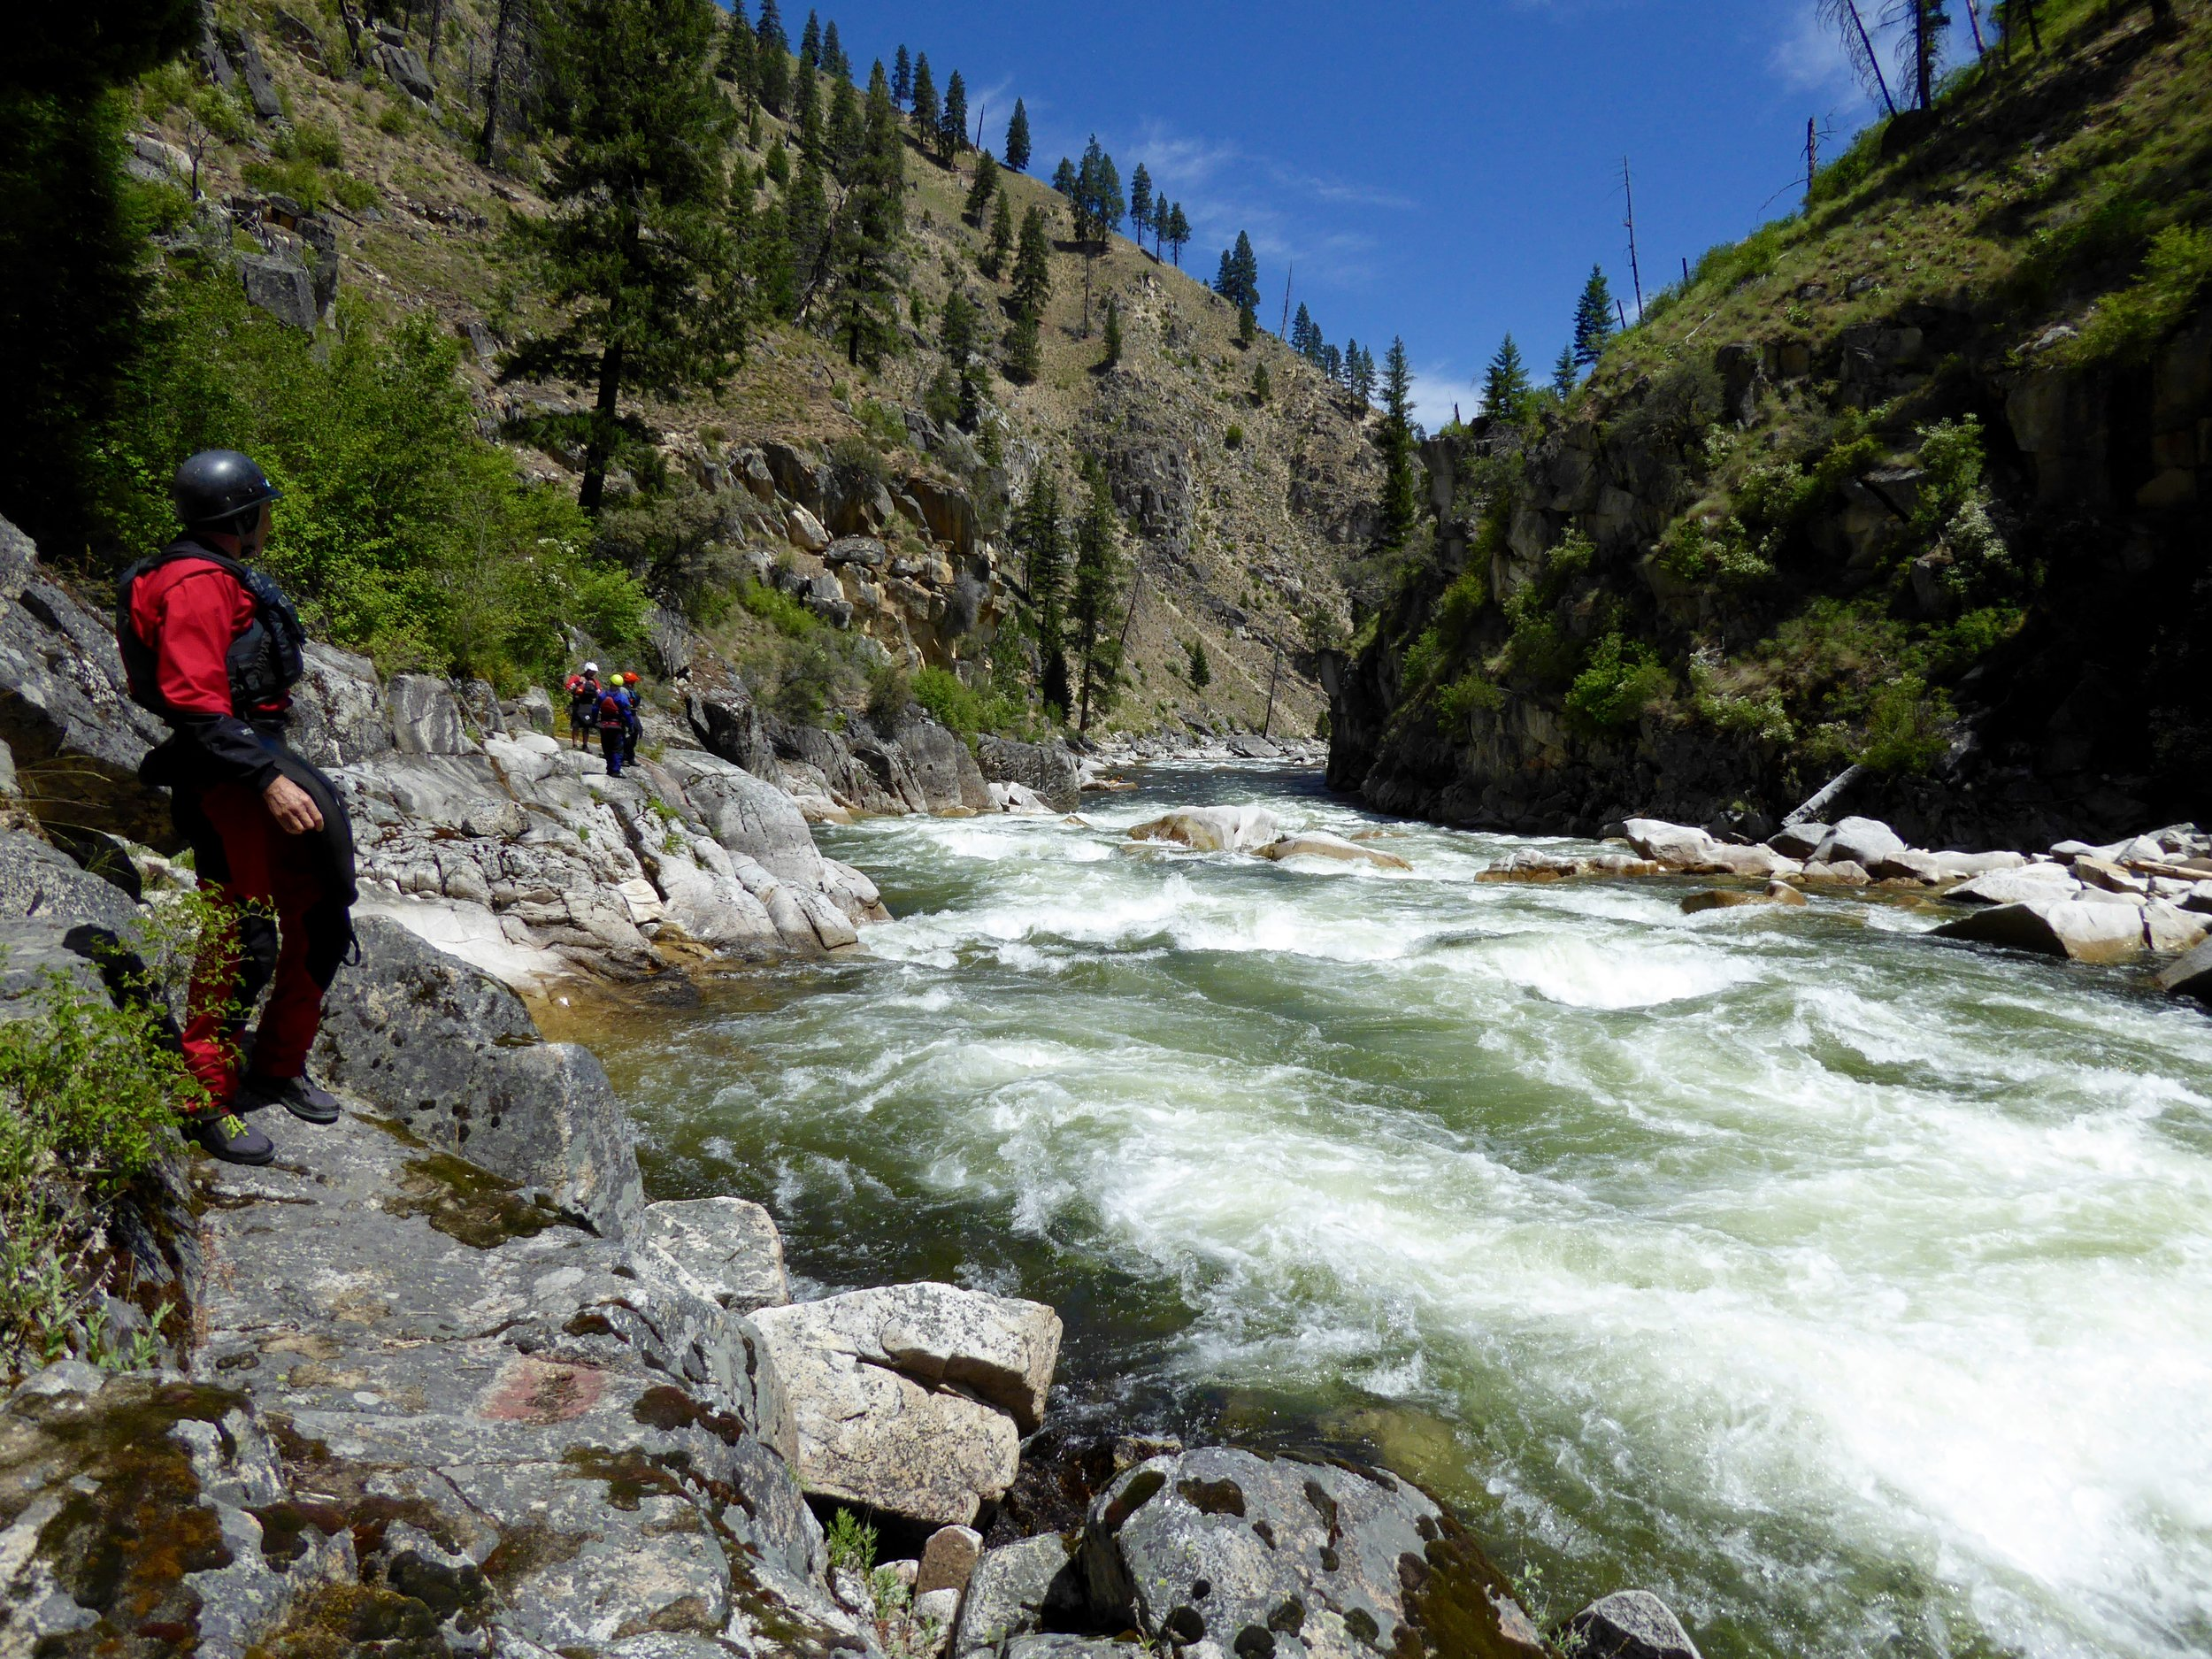 Scouting on the South Fork of the Salmon. Photo by Nick Hinds.